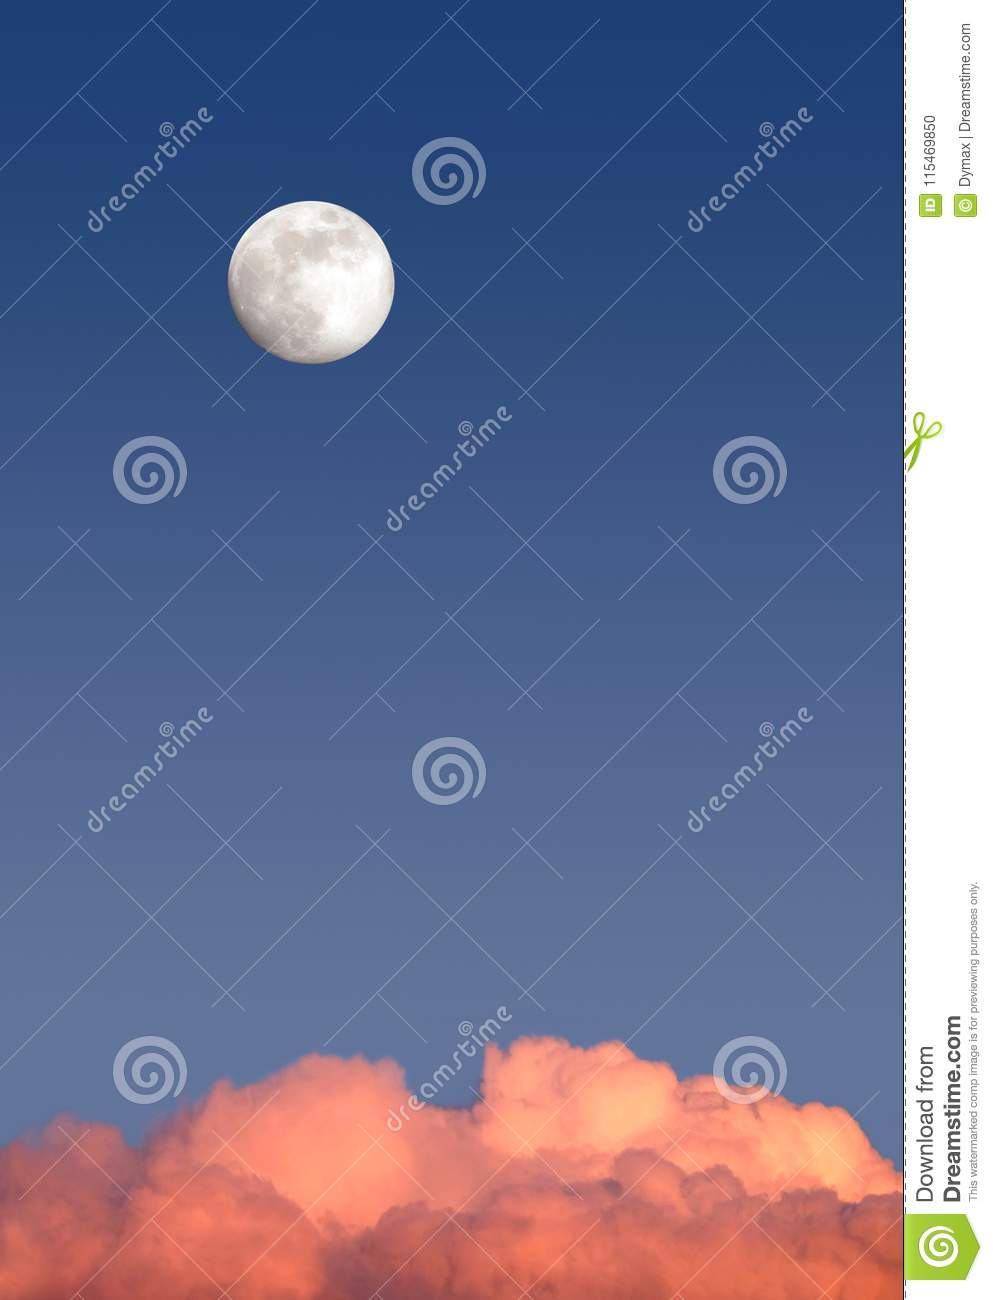 Beautiful sky landscape with white full moon high on clear blue gradient sky above red clouds on sunset